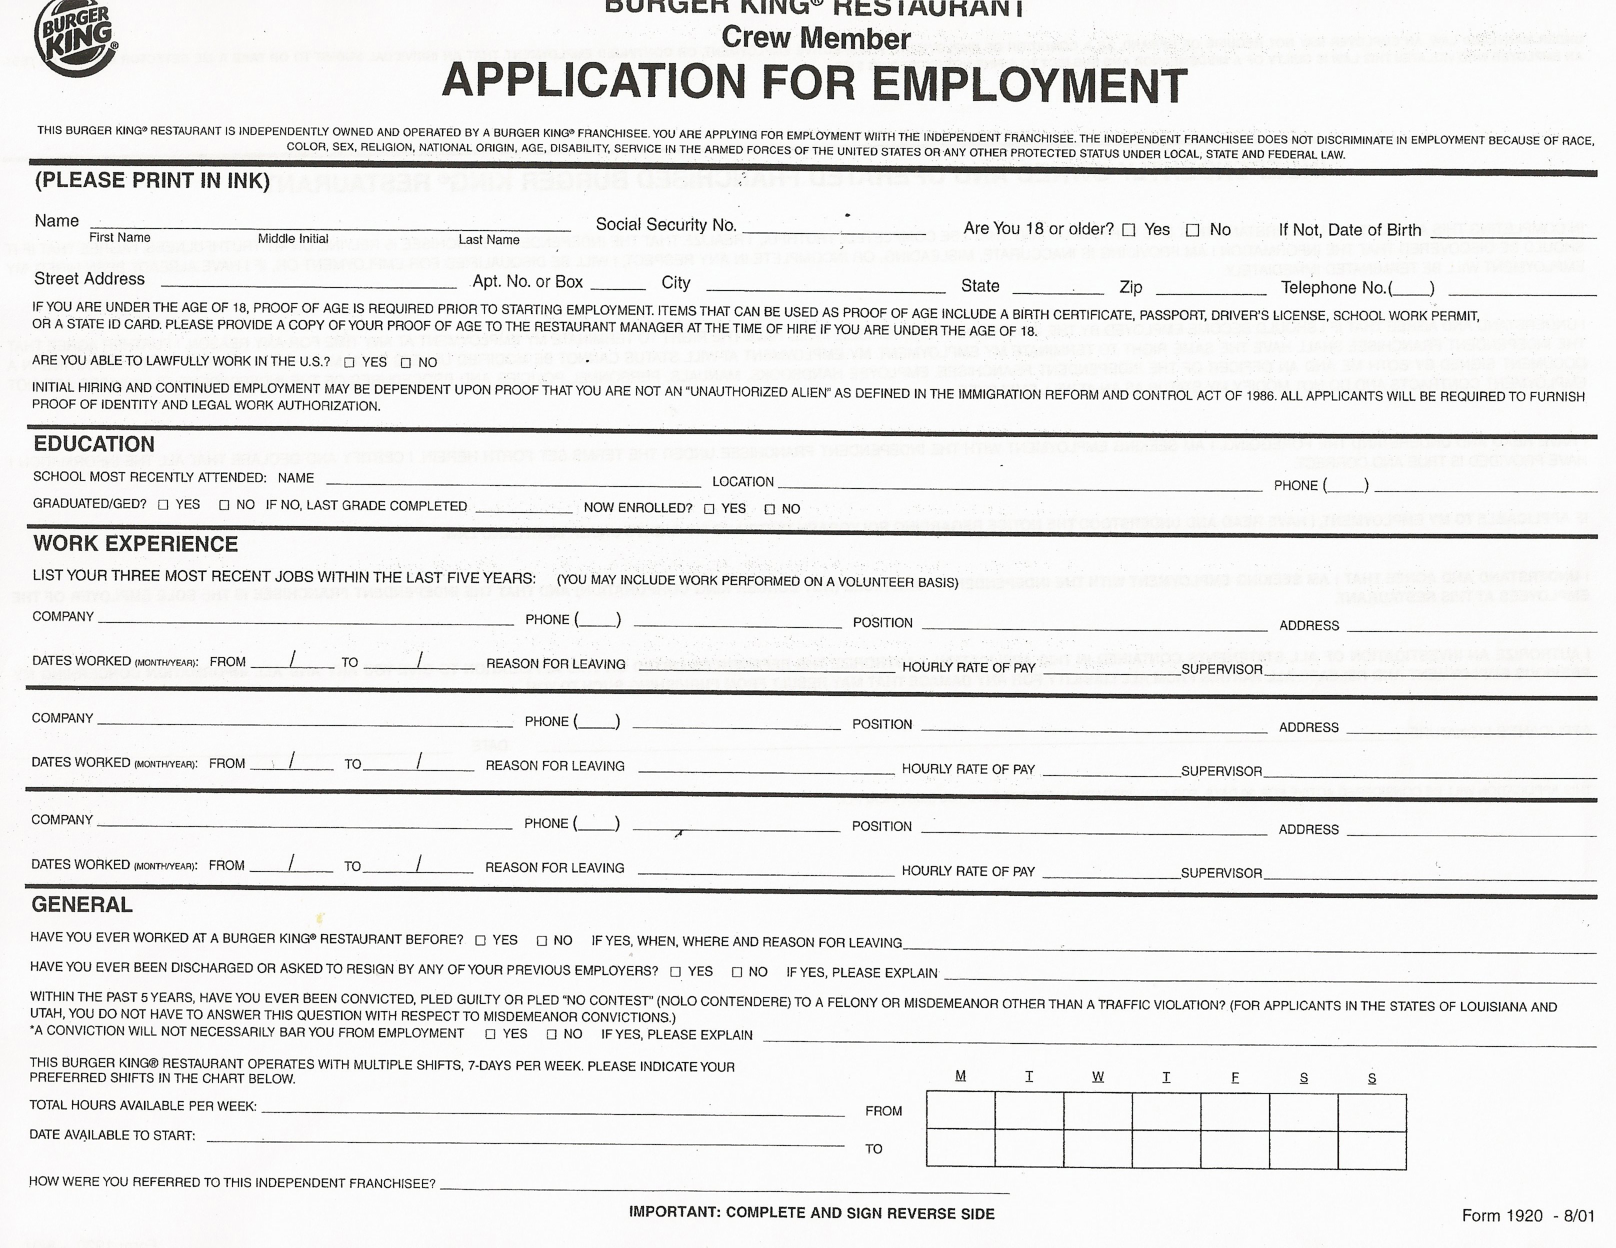 Job Application Forms To Print Printable Job Application Forms